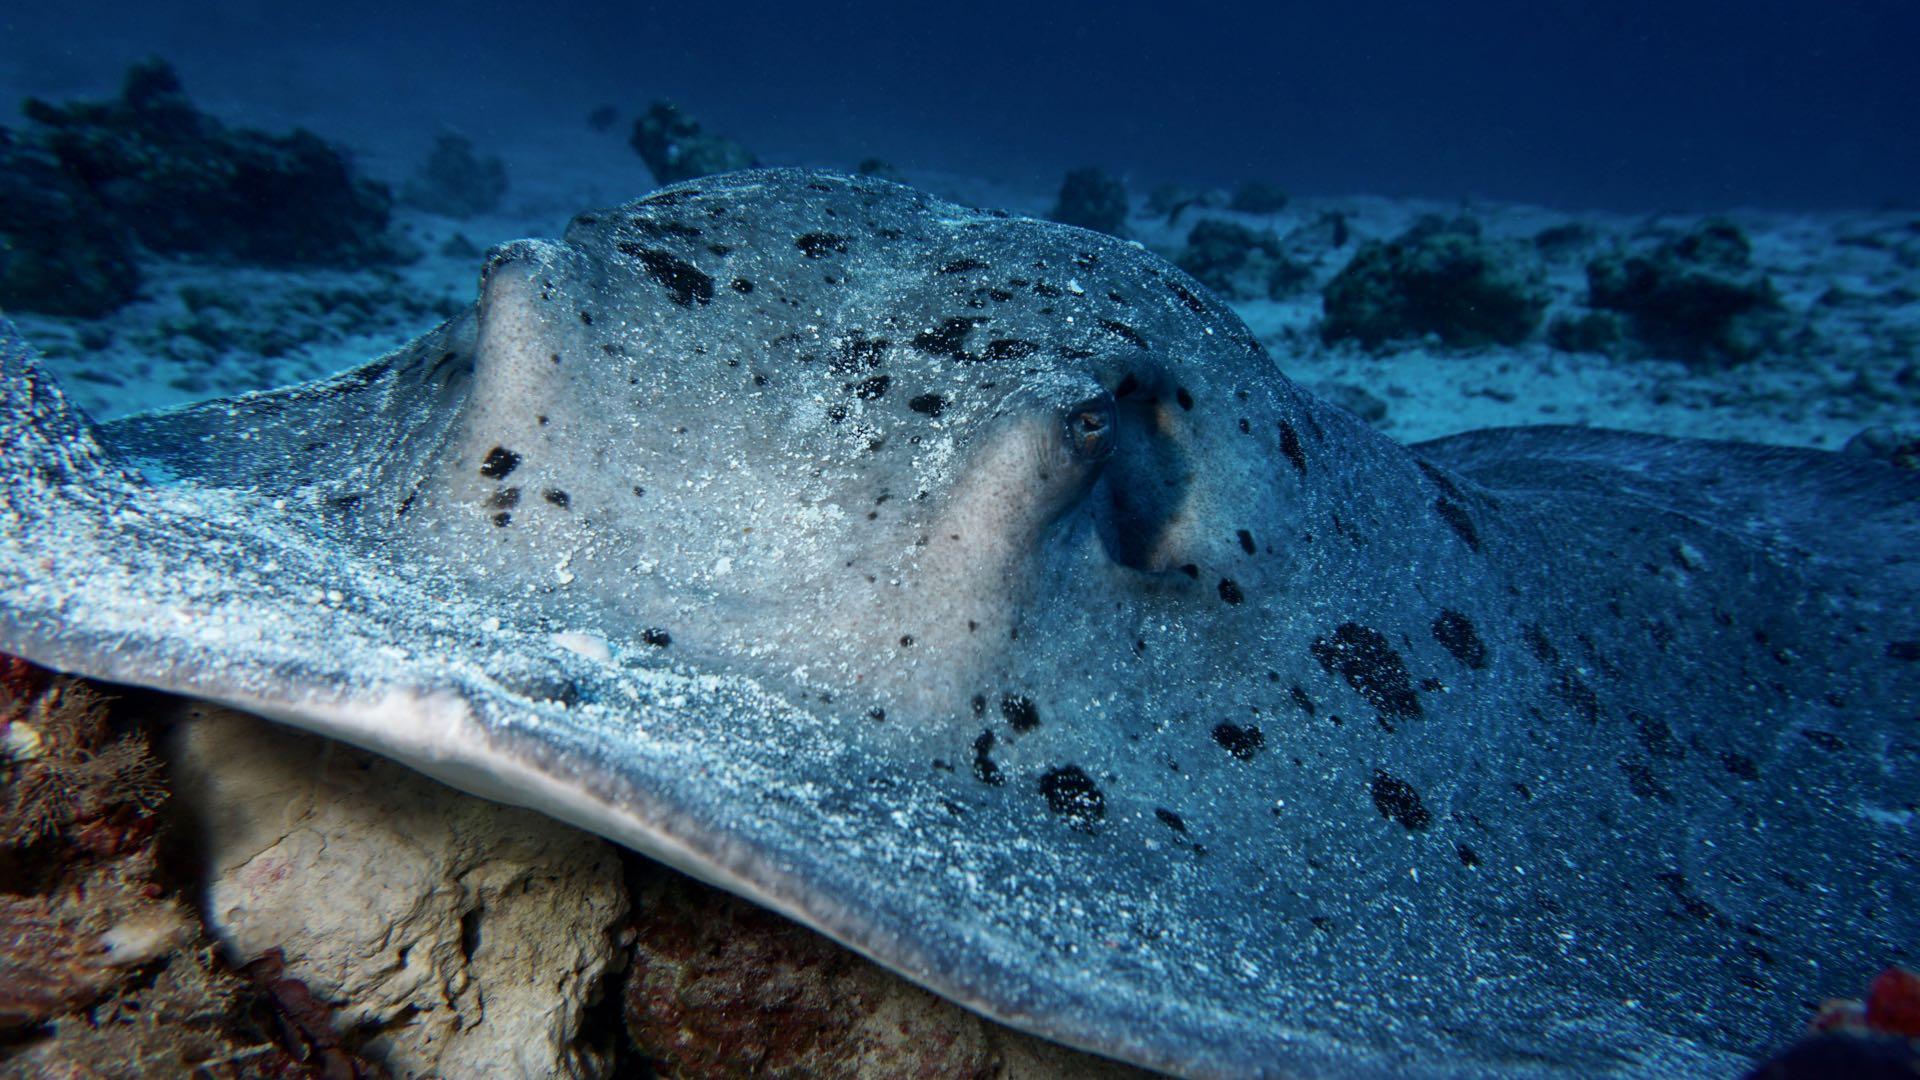 Stingray Maldives Liveaboard diving